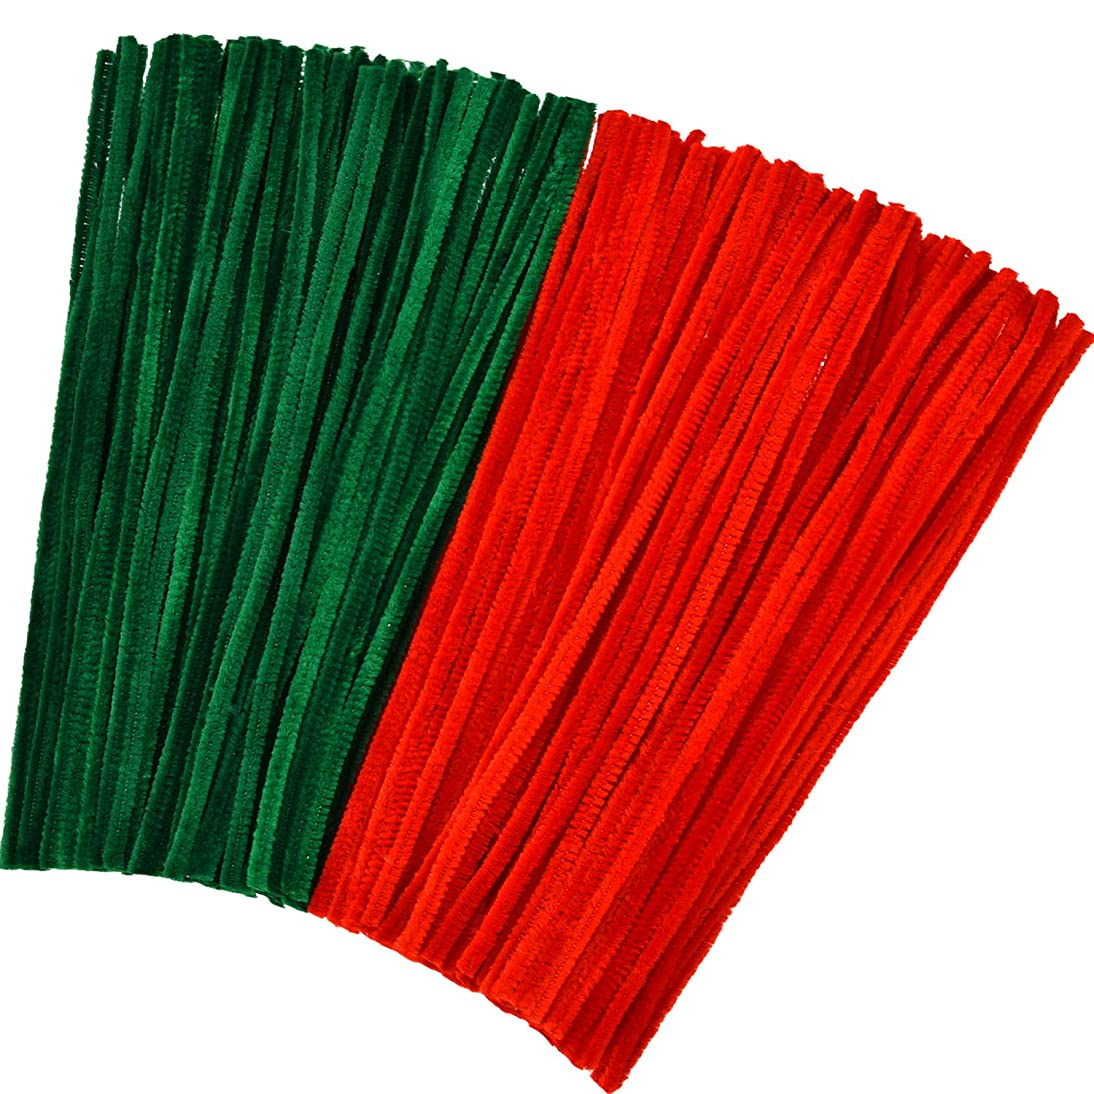 Tatuo 300 Pieces Christmas Chenille Stems Pipe Cleaners for DIY Art Craft Supplies Decorations, 12 Inches by 6 mm, Red and Green